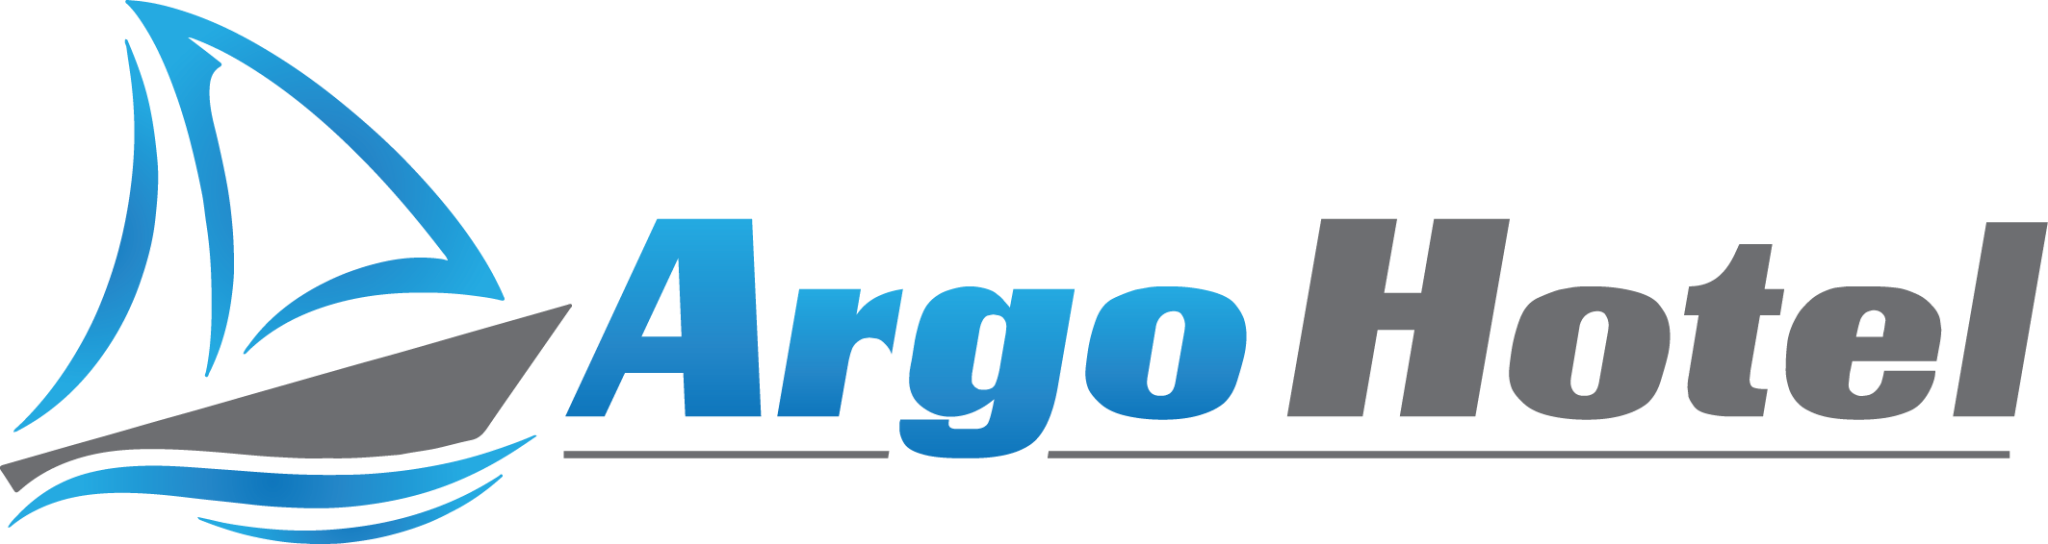 Argo official site